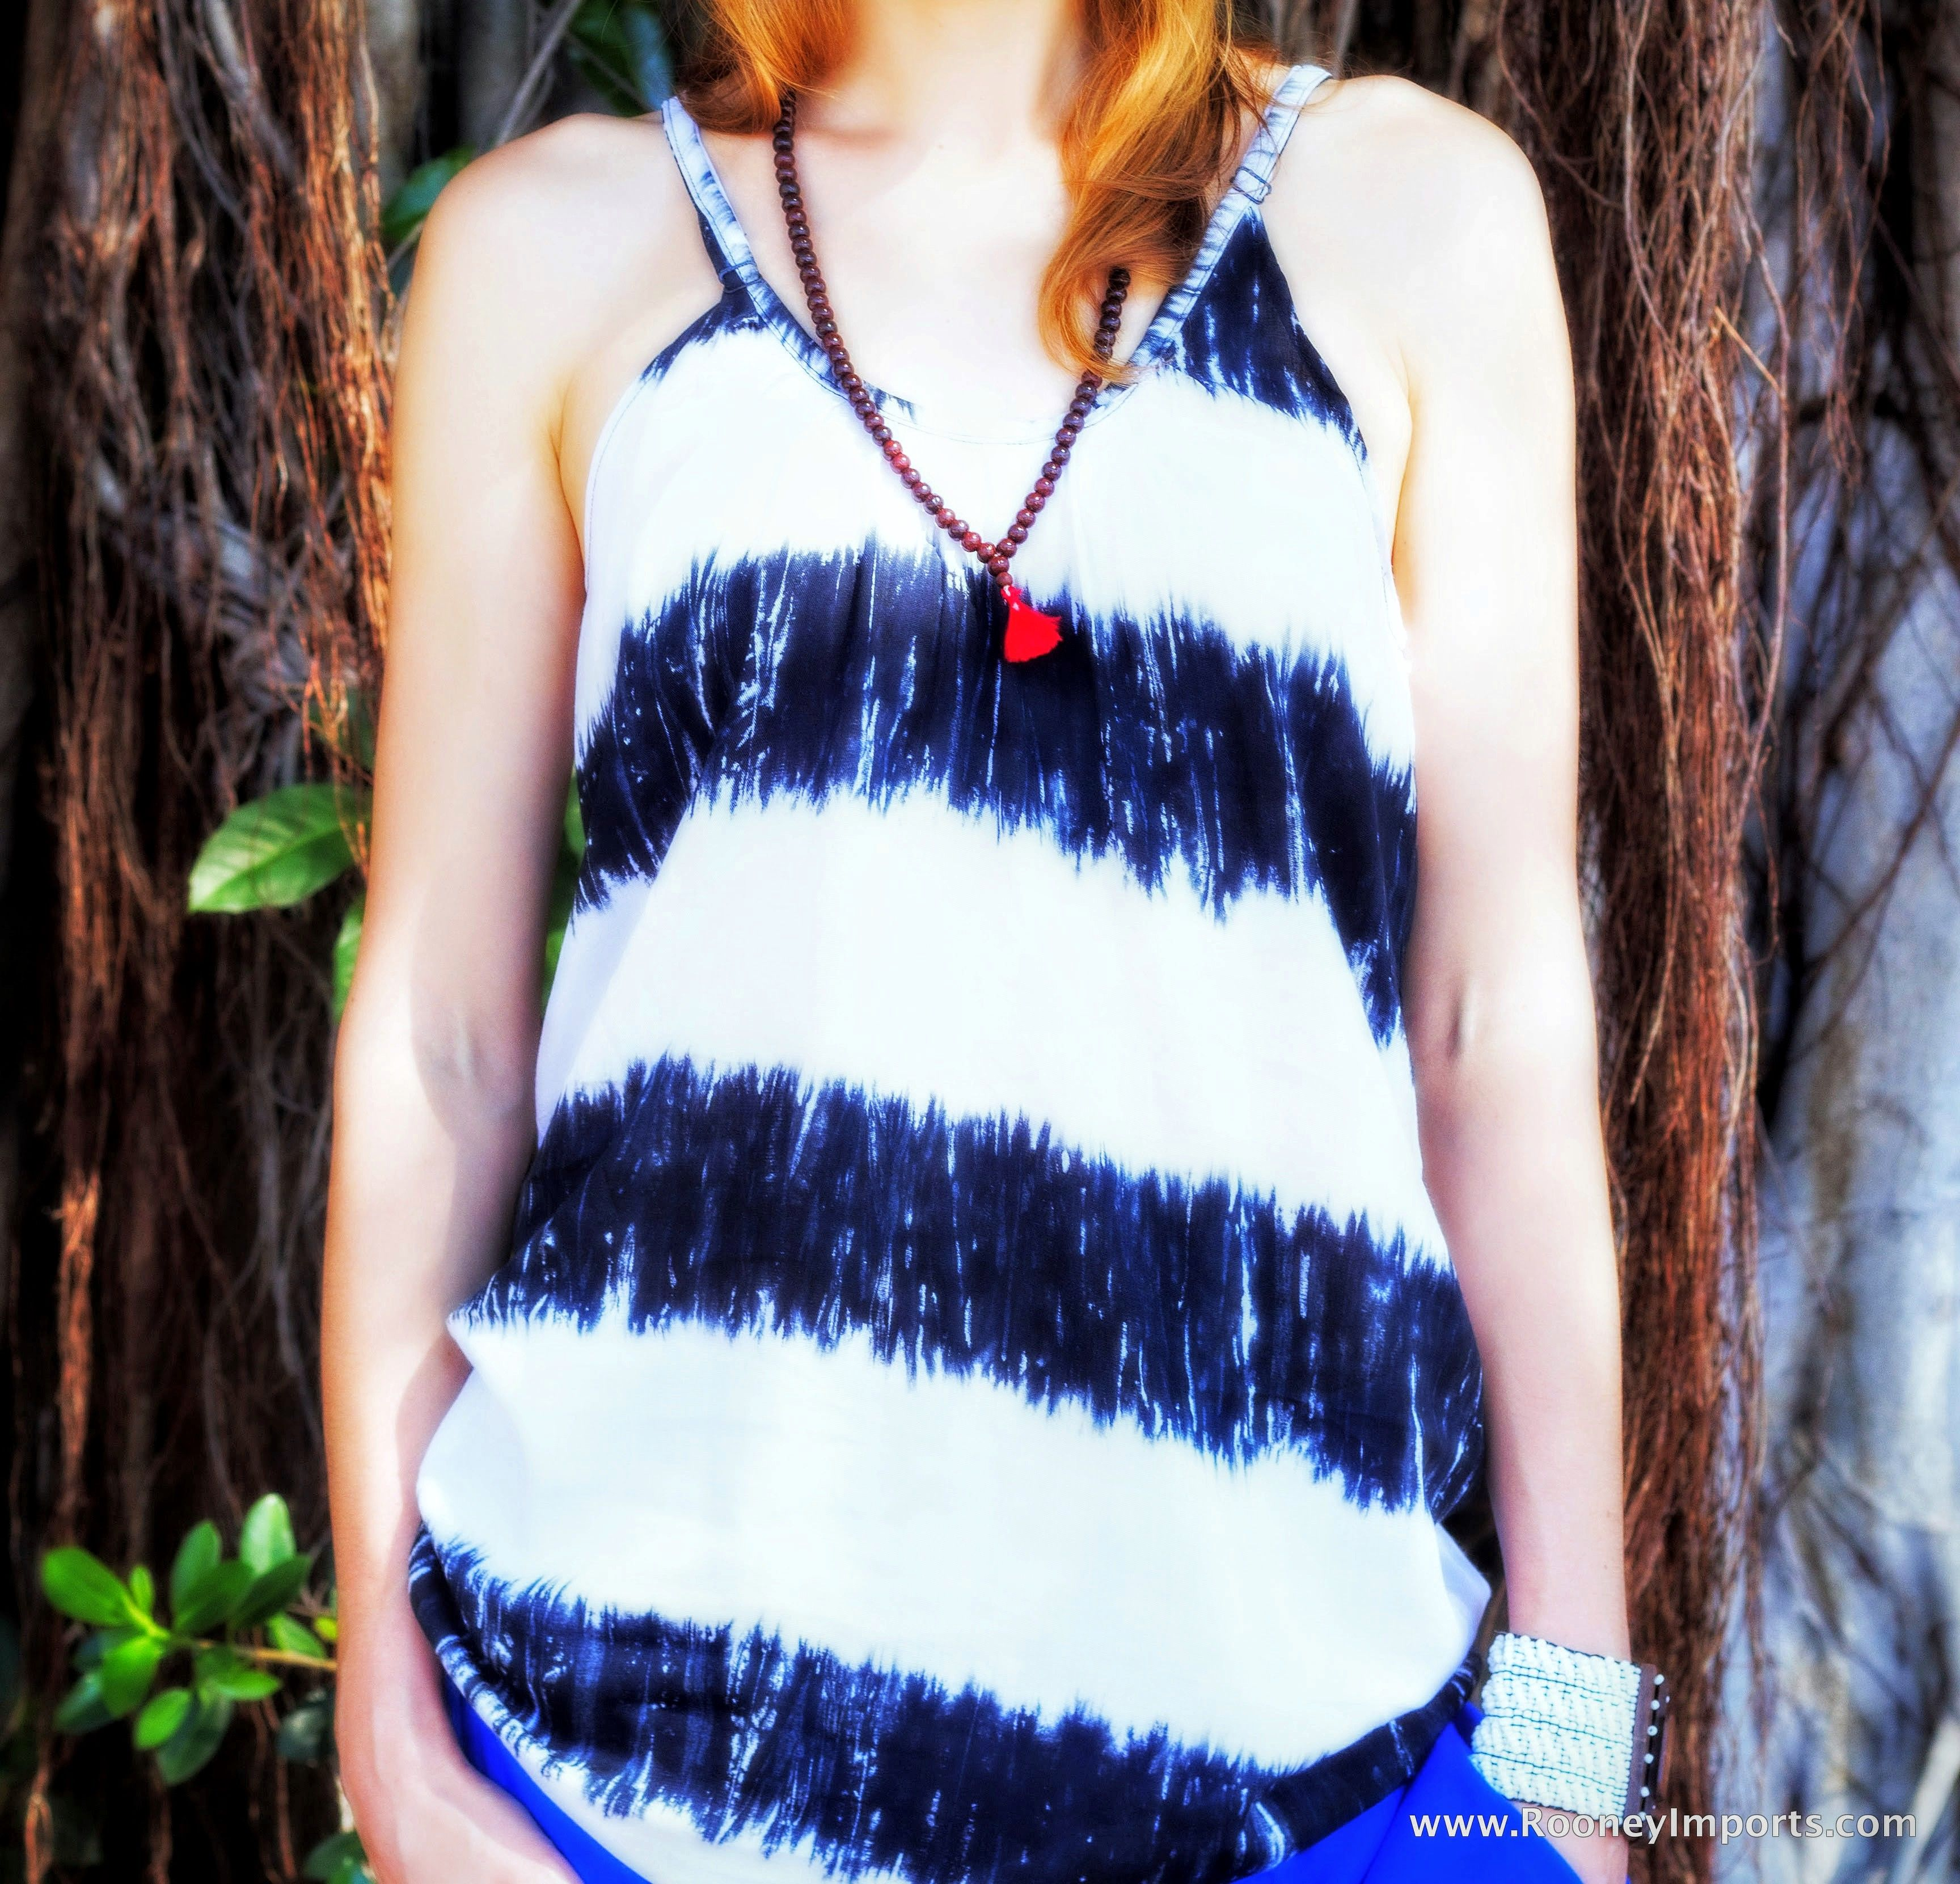 2Tie-Dye For Tank Top! Colorful tie-dye prints#,  TIE- DYE dresses#, Tie-Dye Tank-Tops#, Tie-Dye Rompers, Tie-Dye Maxi Skirts#, Tie-Dye Strapless Dresses#, Tie-Dye Cover-up Dresses# and Tie-Dye Bat-Wing Cover-Up Tops#, www.RooneyImports.com